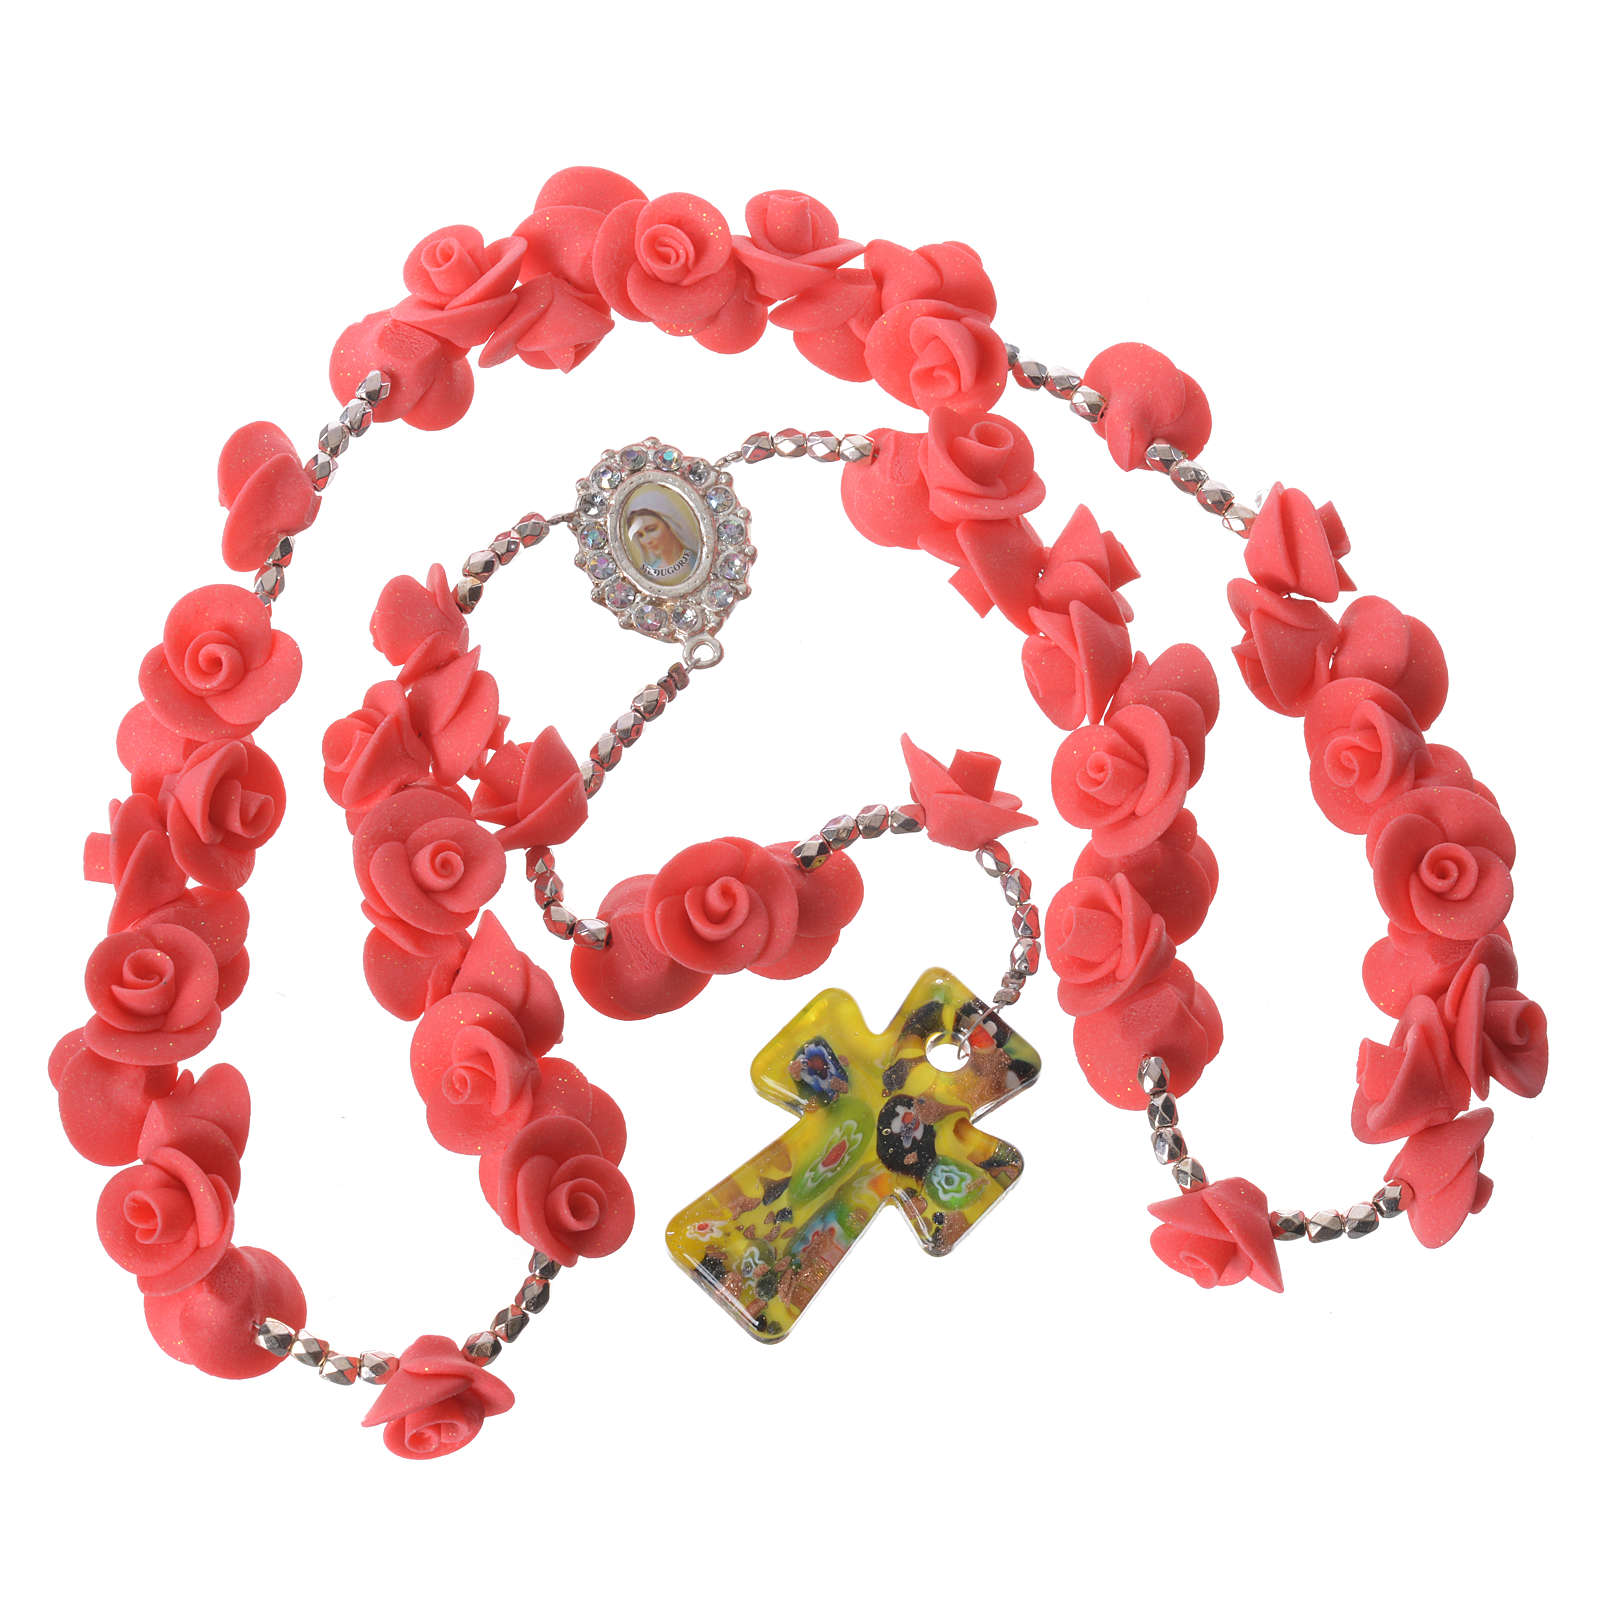 Medjugorje rosary with roses, Murano glass cross 4